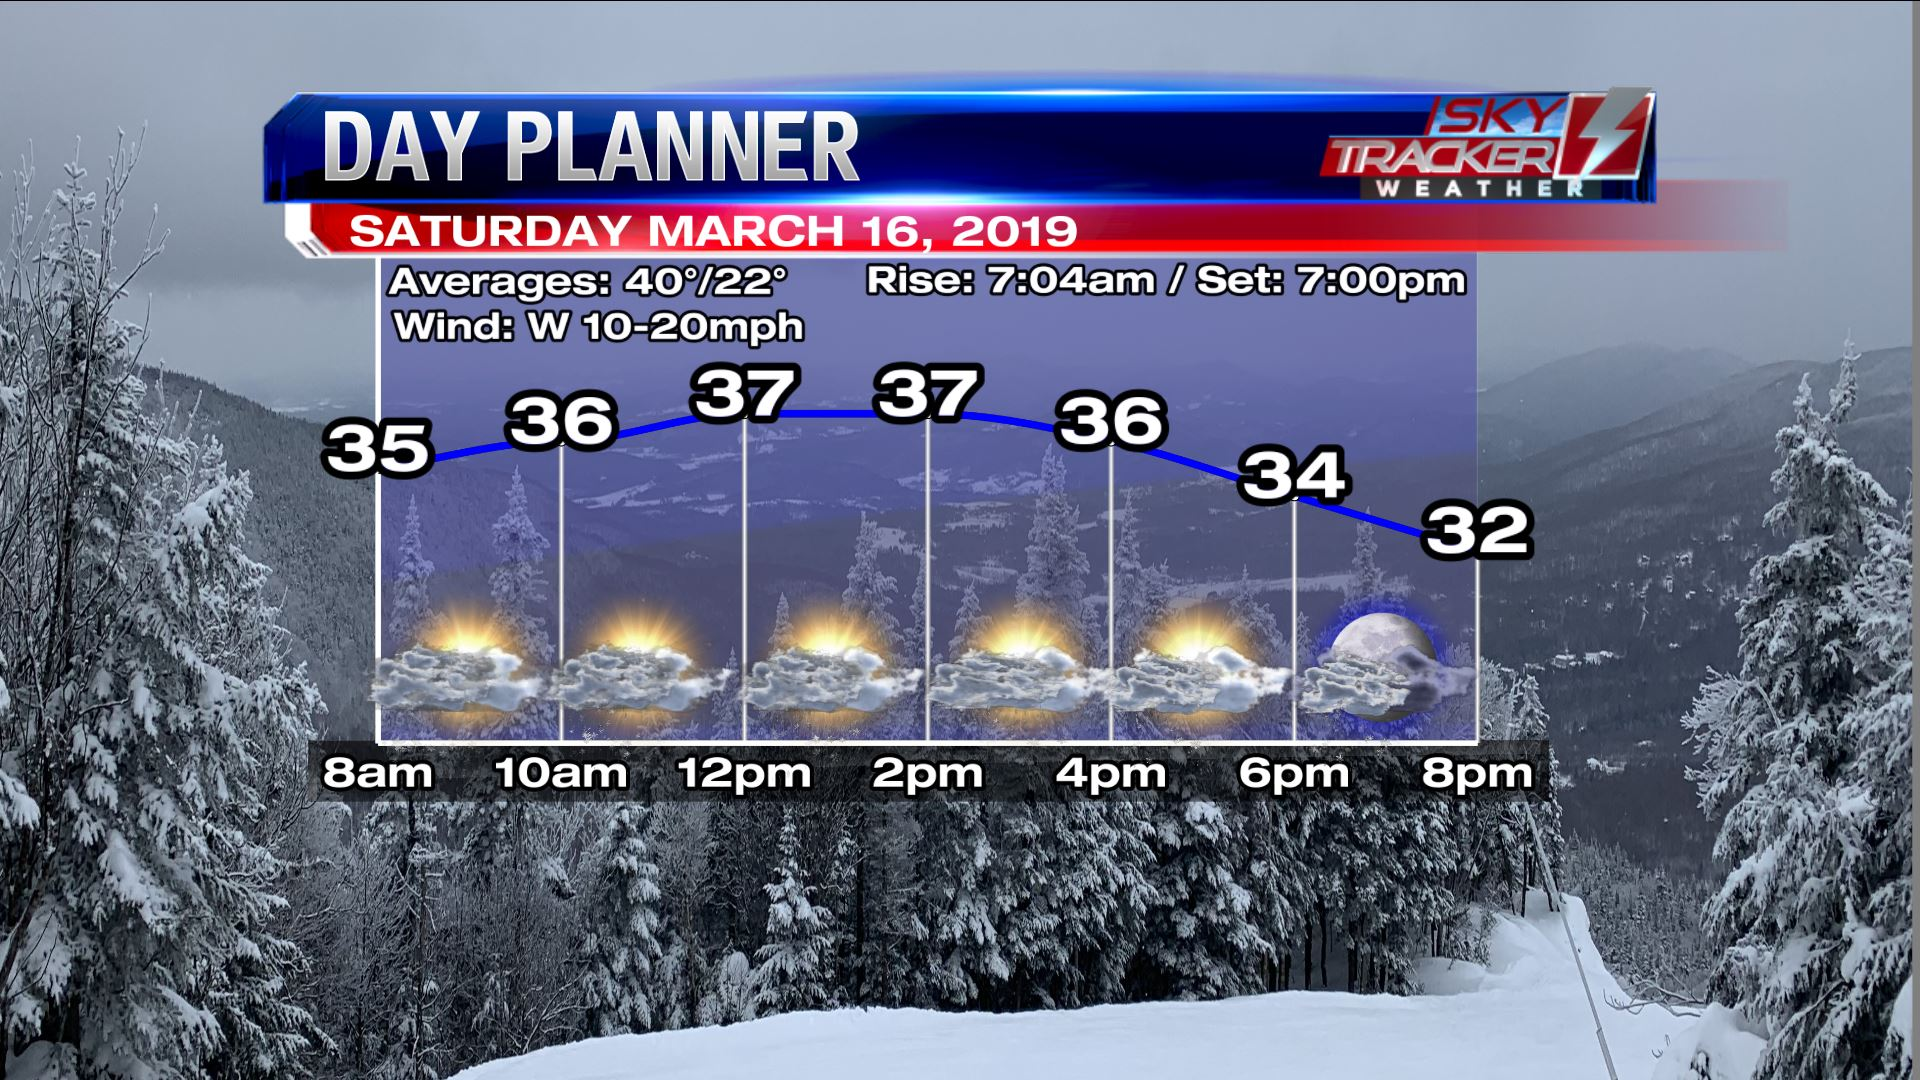 Planner for Saturday March 16 2019